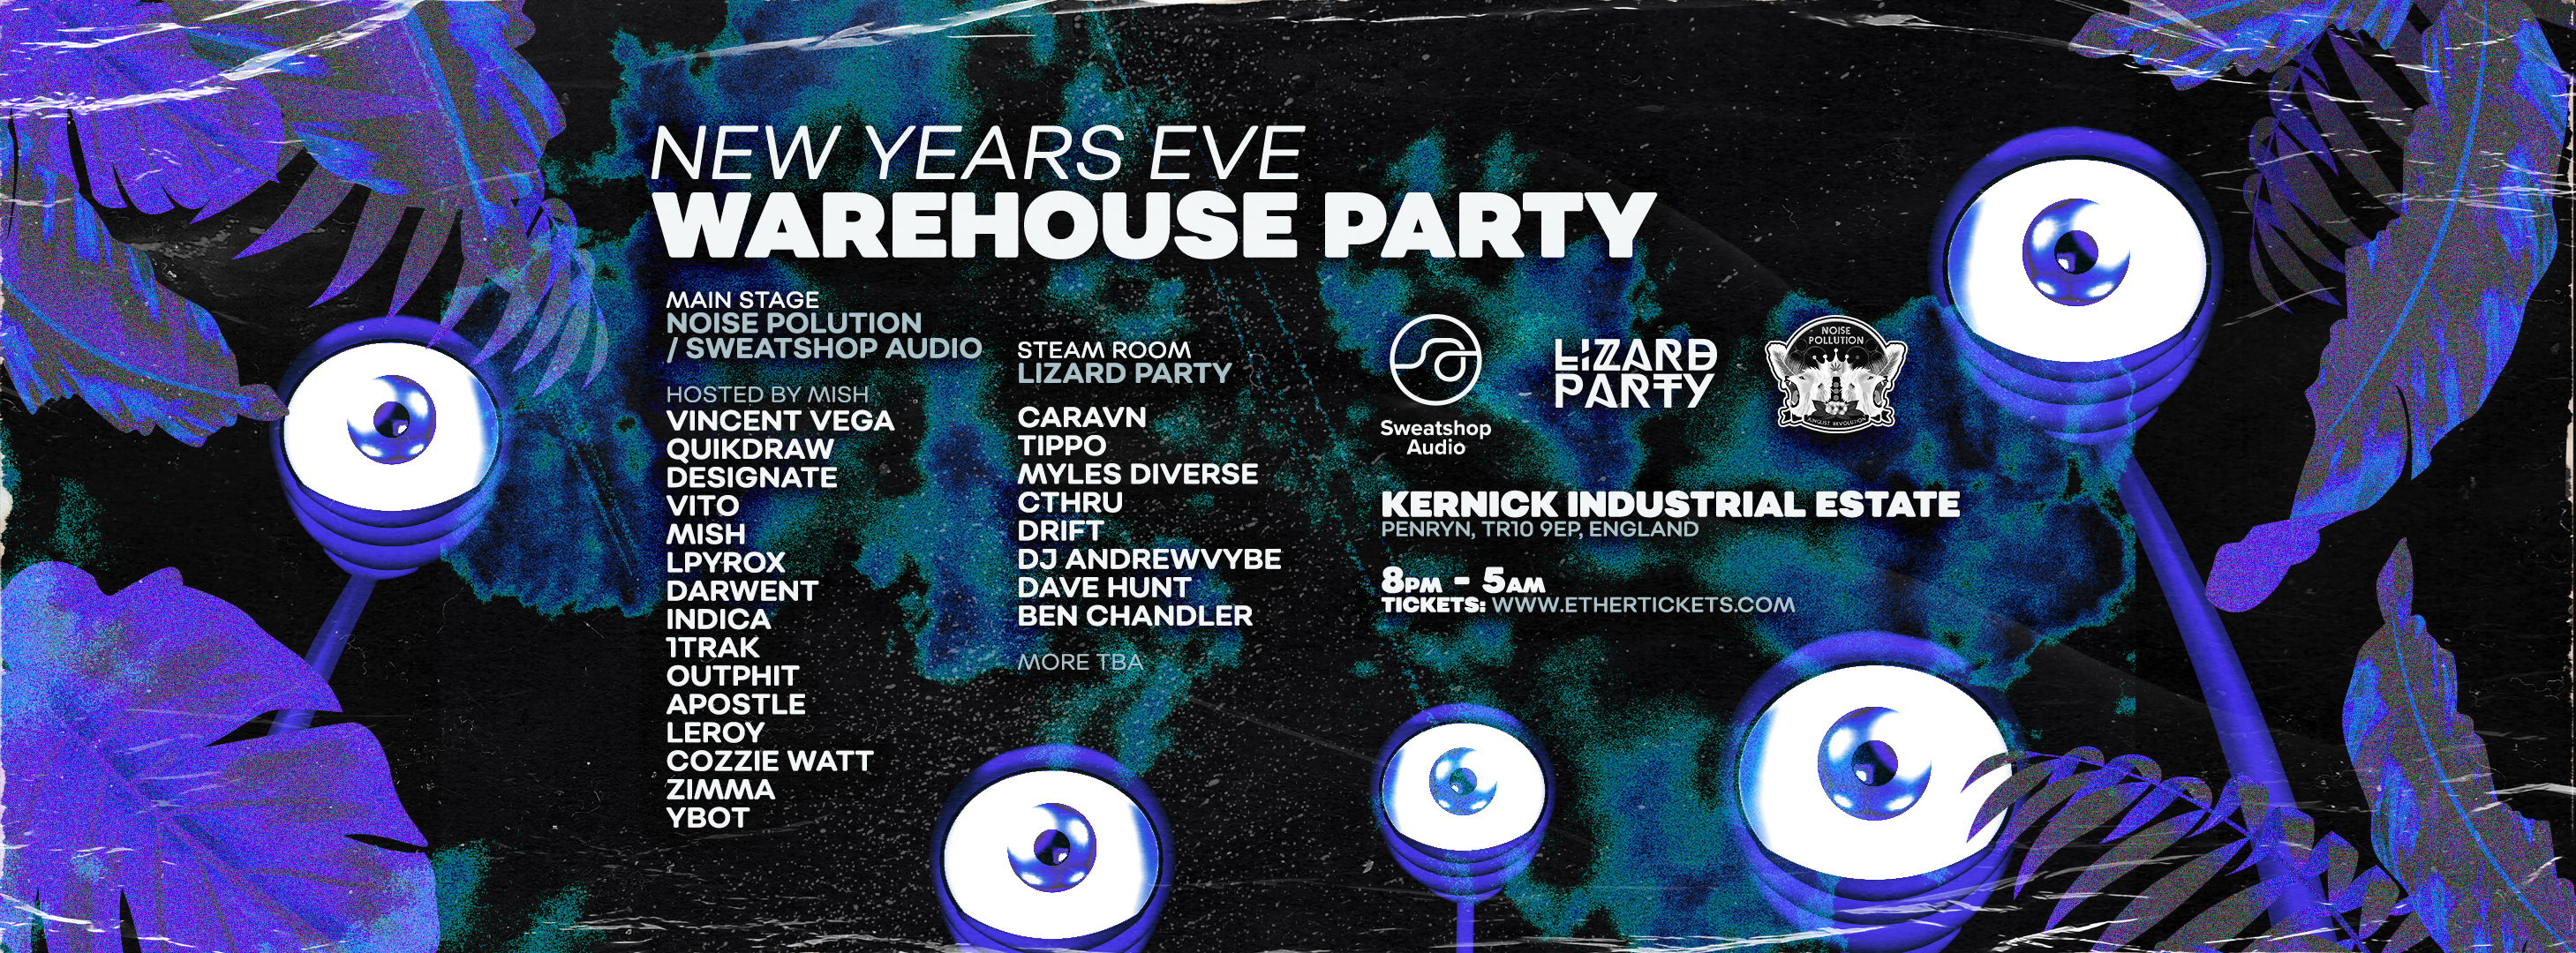 New Years Eve Warehouse Party